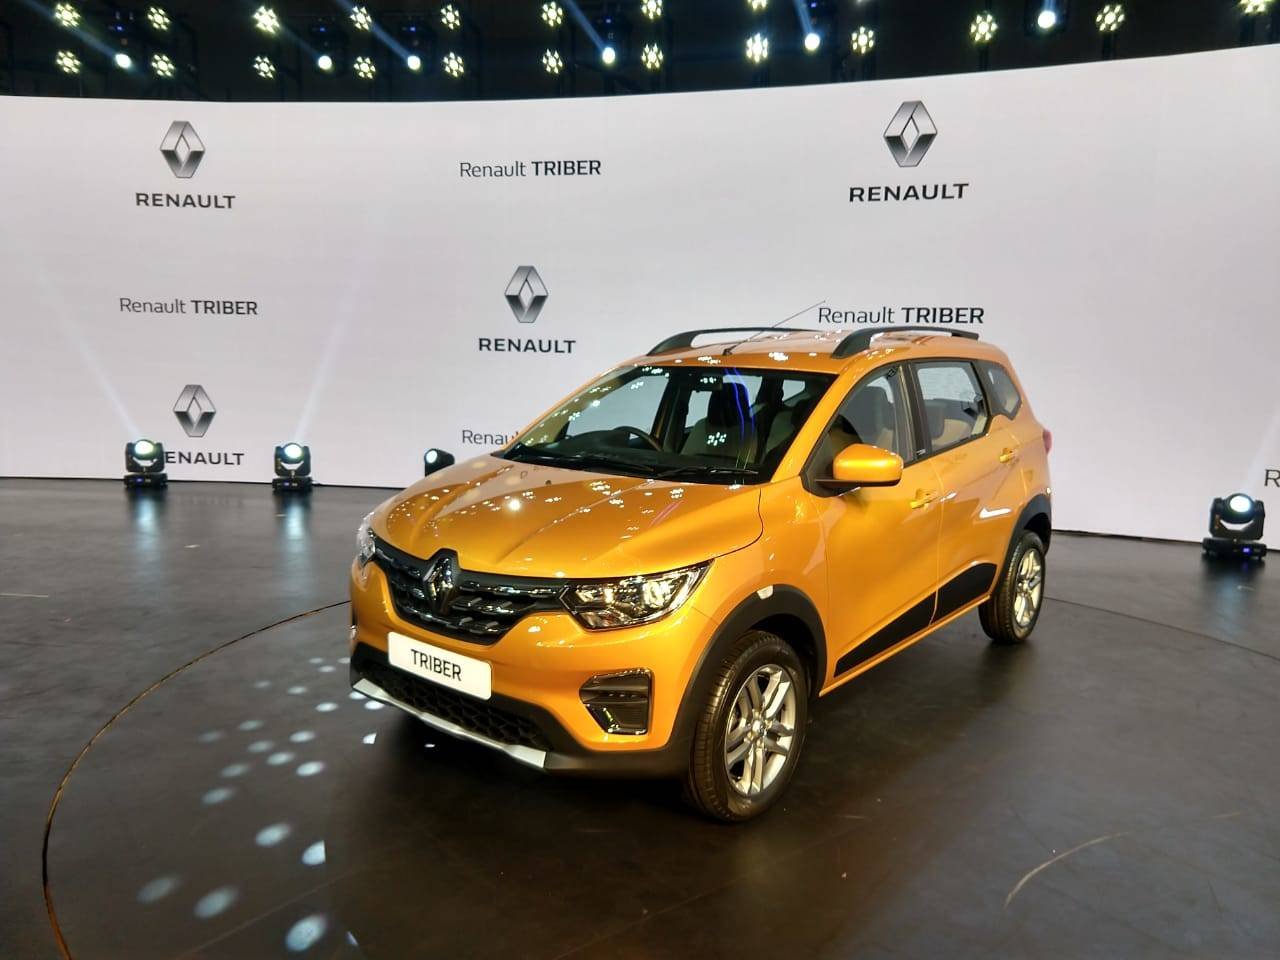 Renault Triber Renault To Export Mpv Triber To Neighbouring Countries Auto News Et Auto